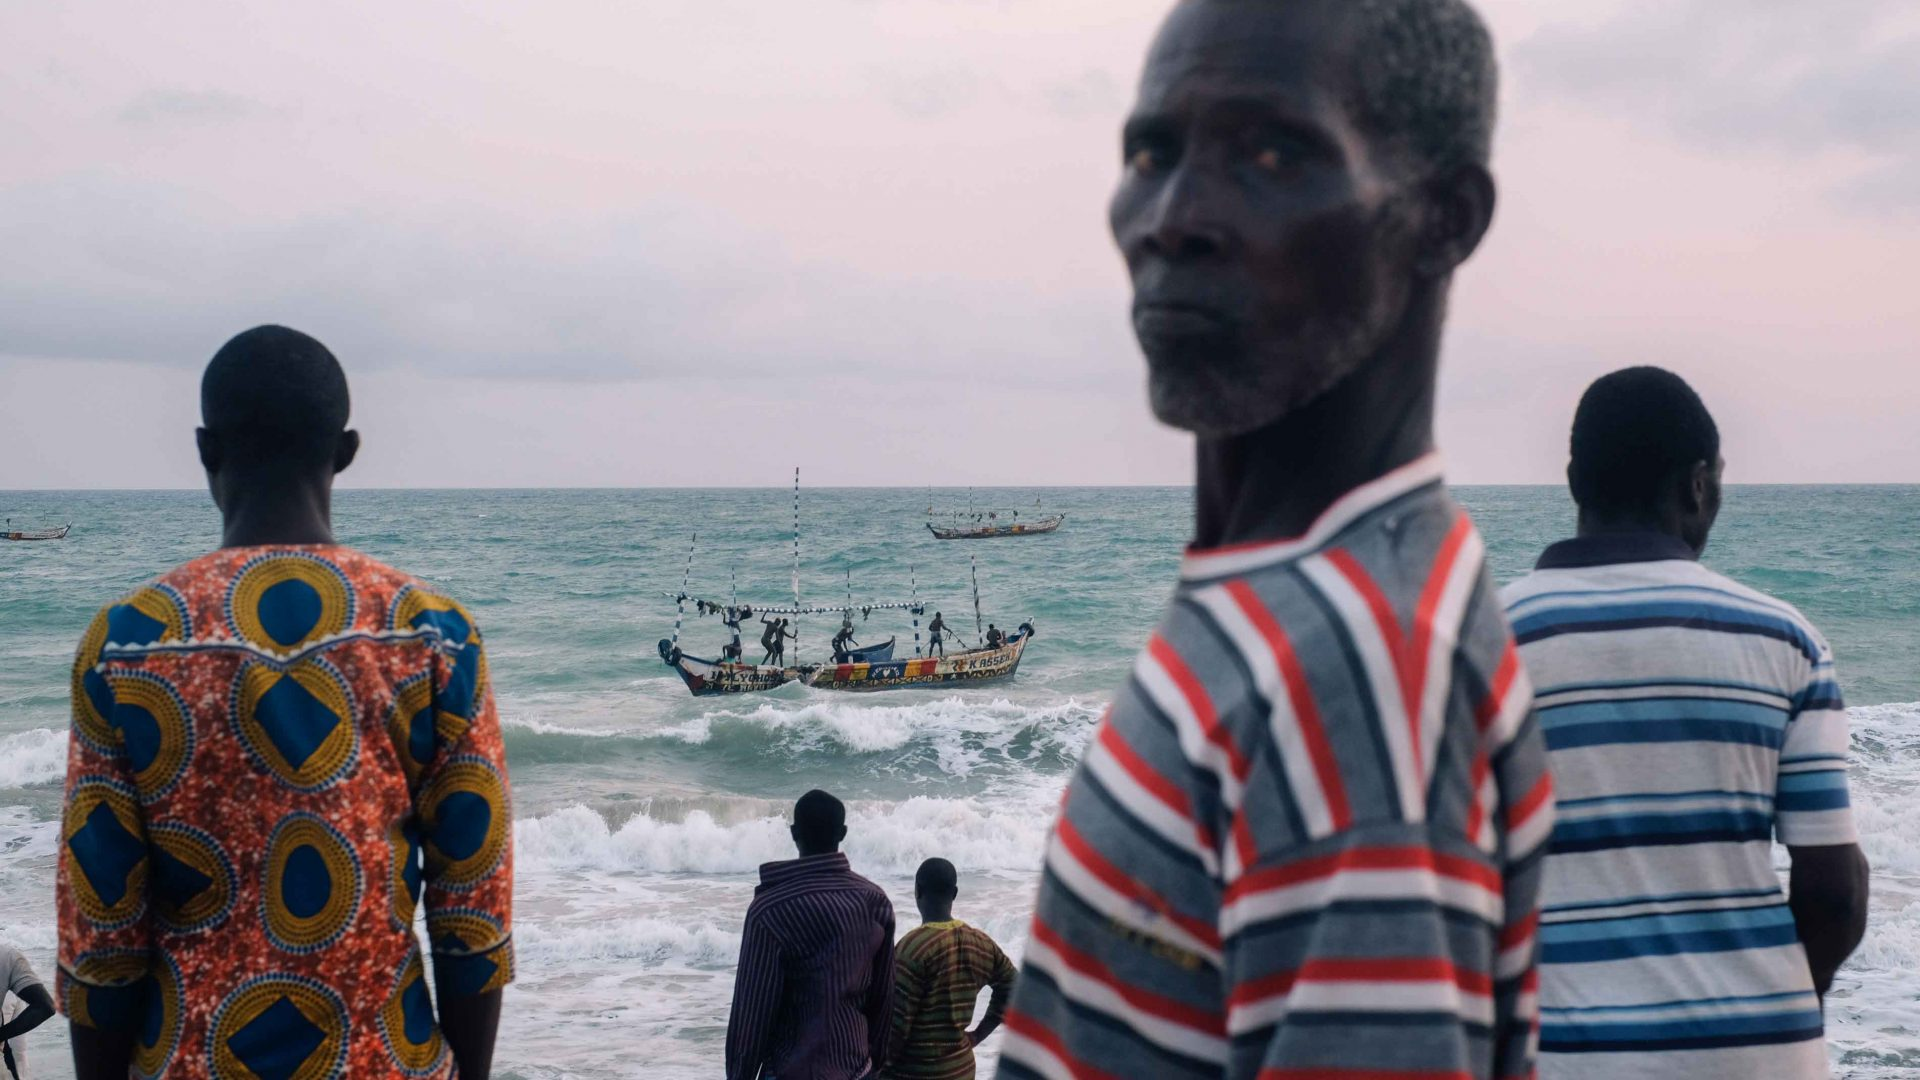 Fishermen wait for a boat to come in carrying the fish they have caught that day, Ada Foah, Volta Region, Ghana.